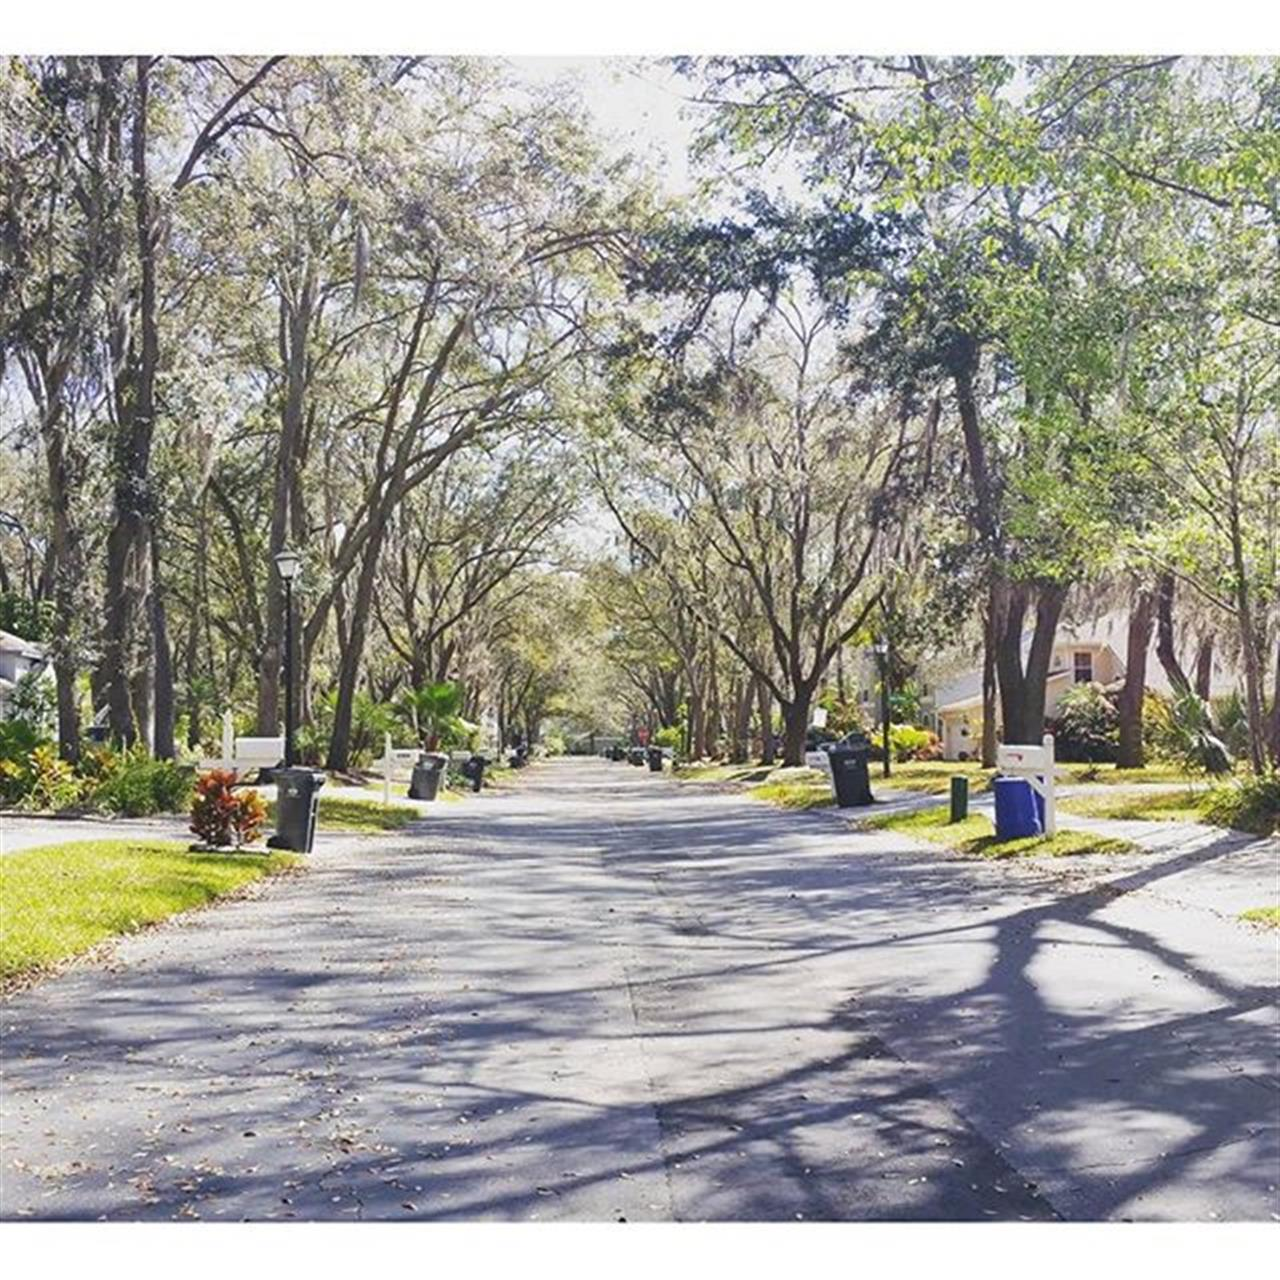 Home inspections are so much easier on days like this. #FloridaWinter #leadingrelocal